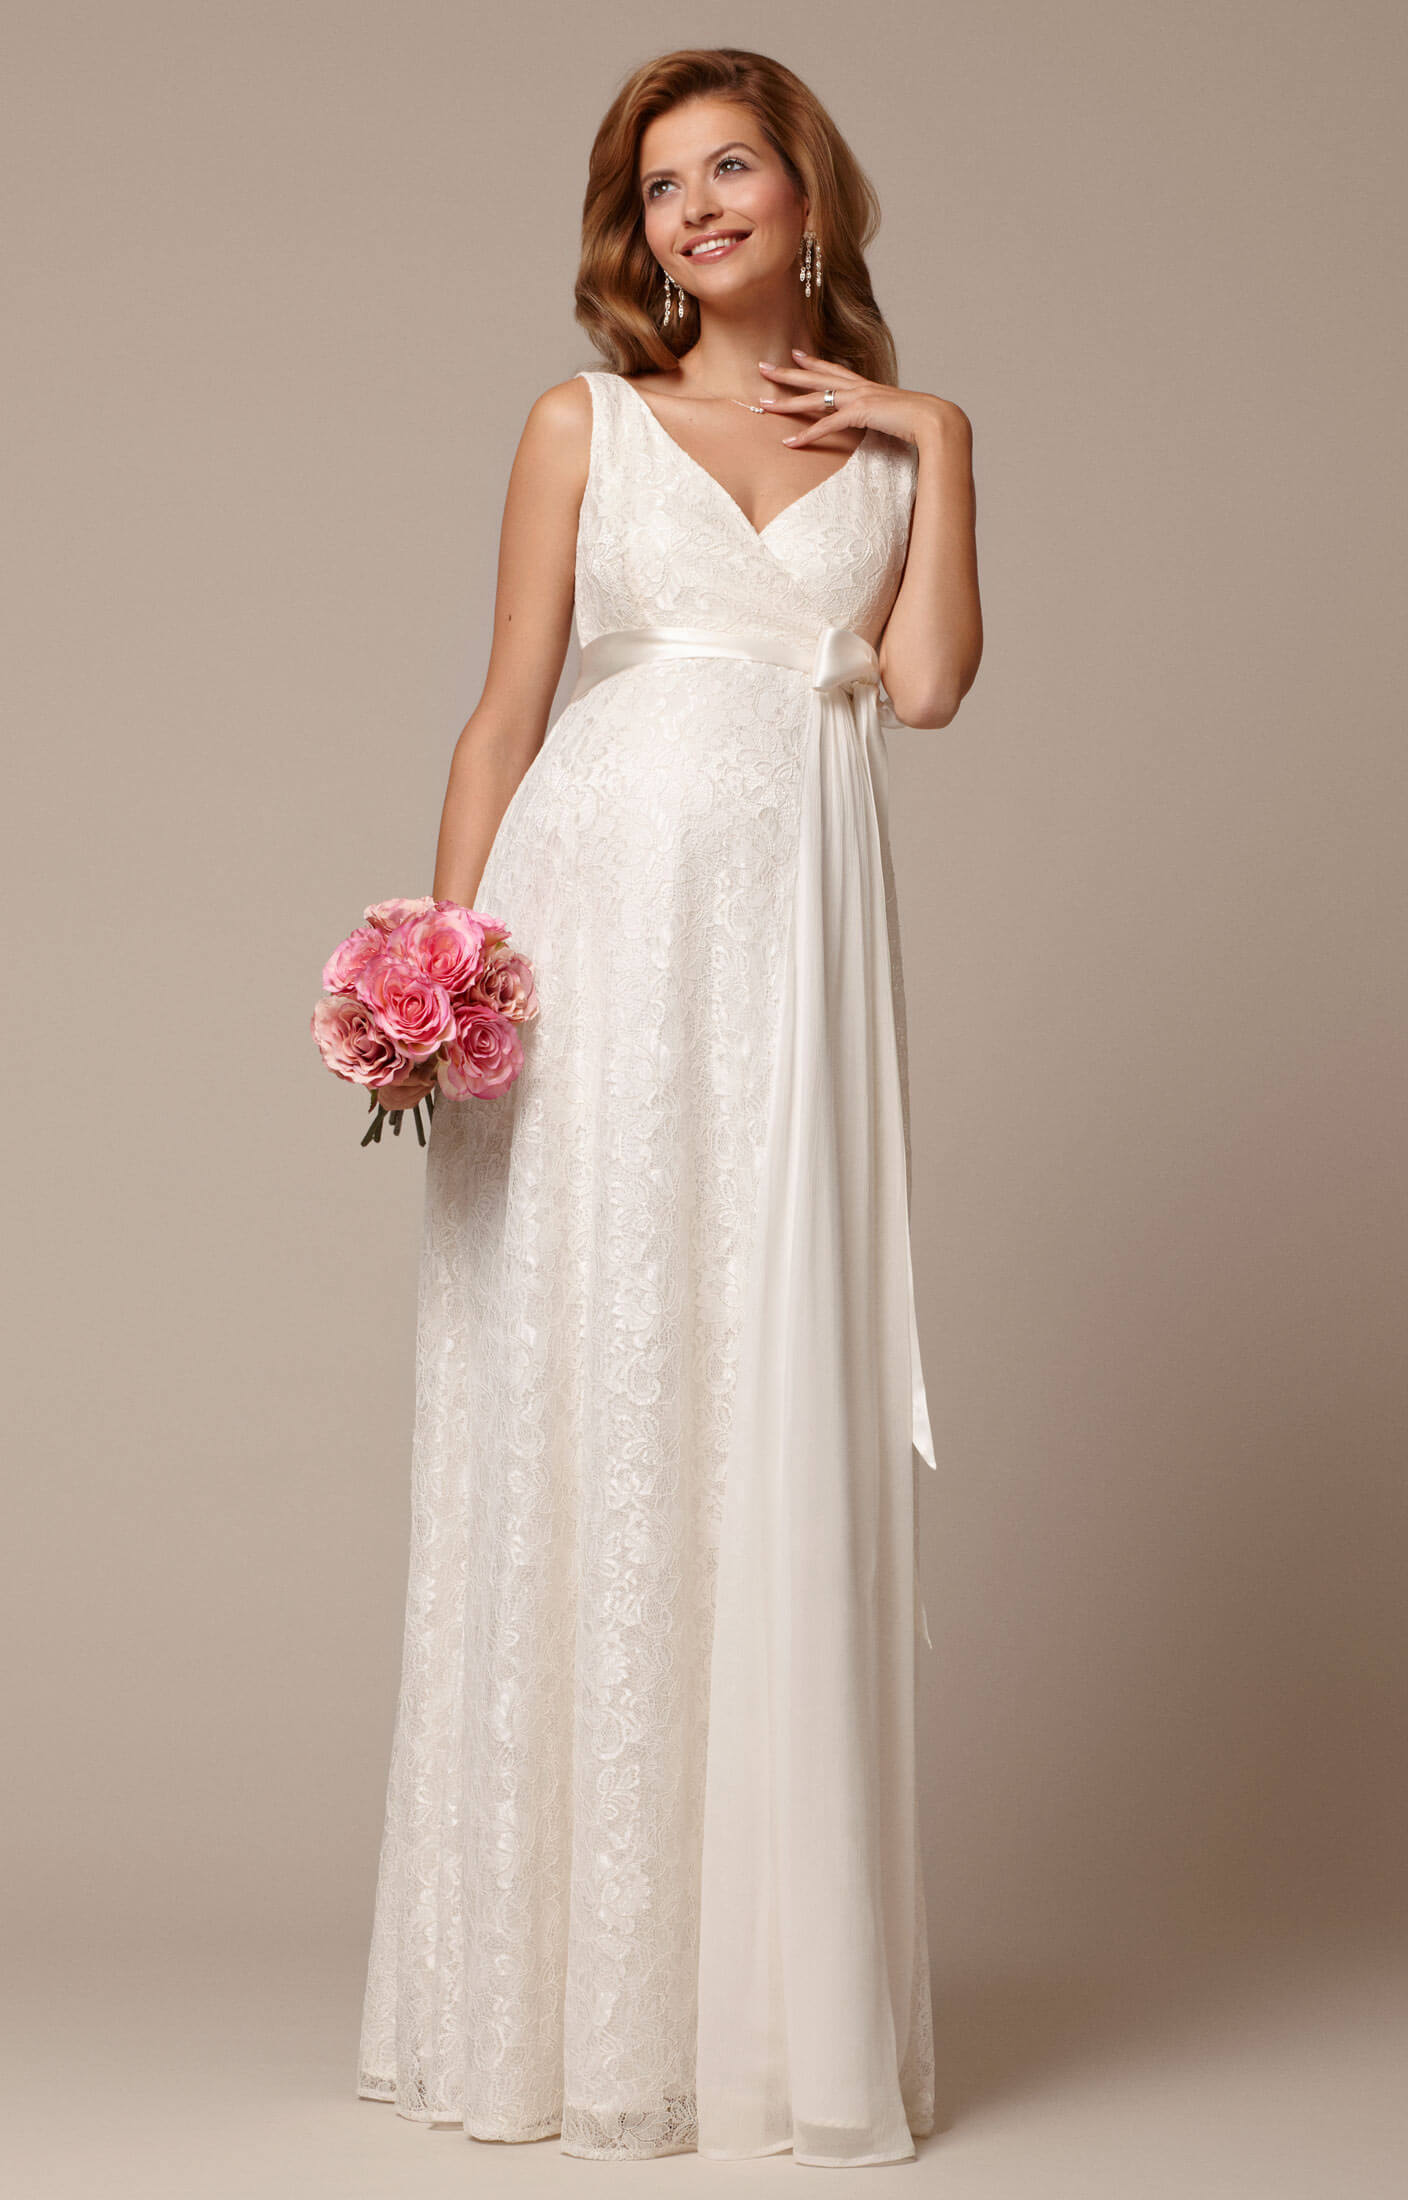 thea maternity gown long ivory maternity wedding dresses evening wear and party clothes by